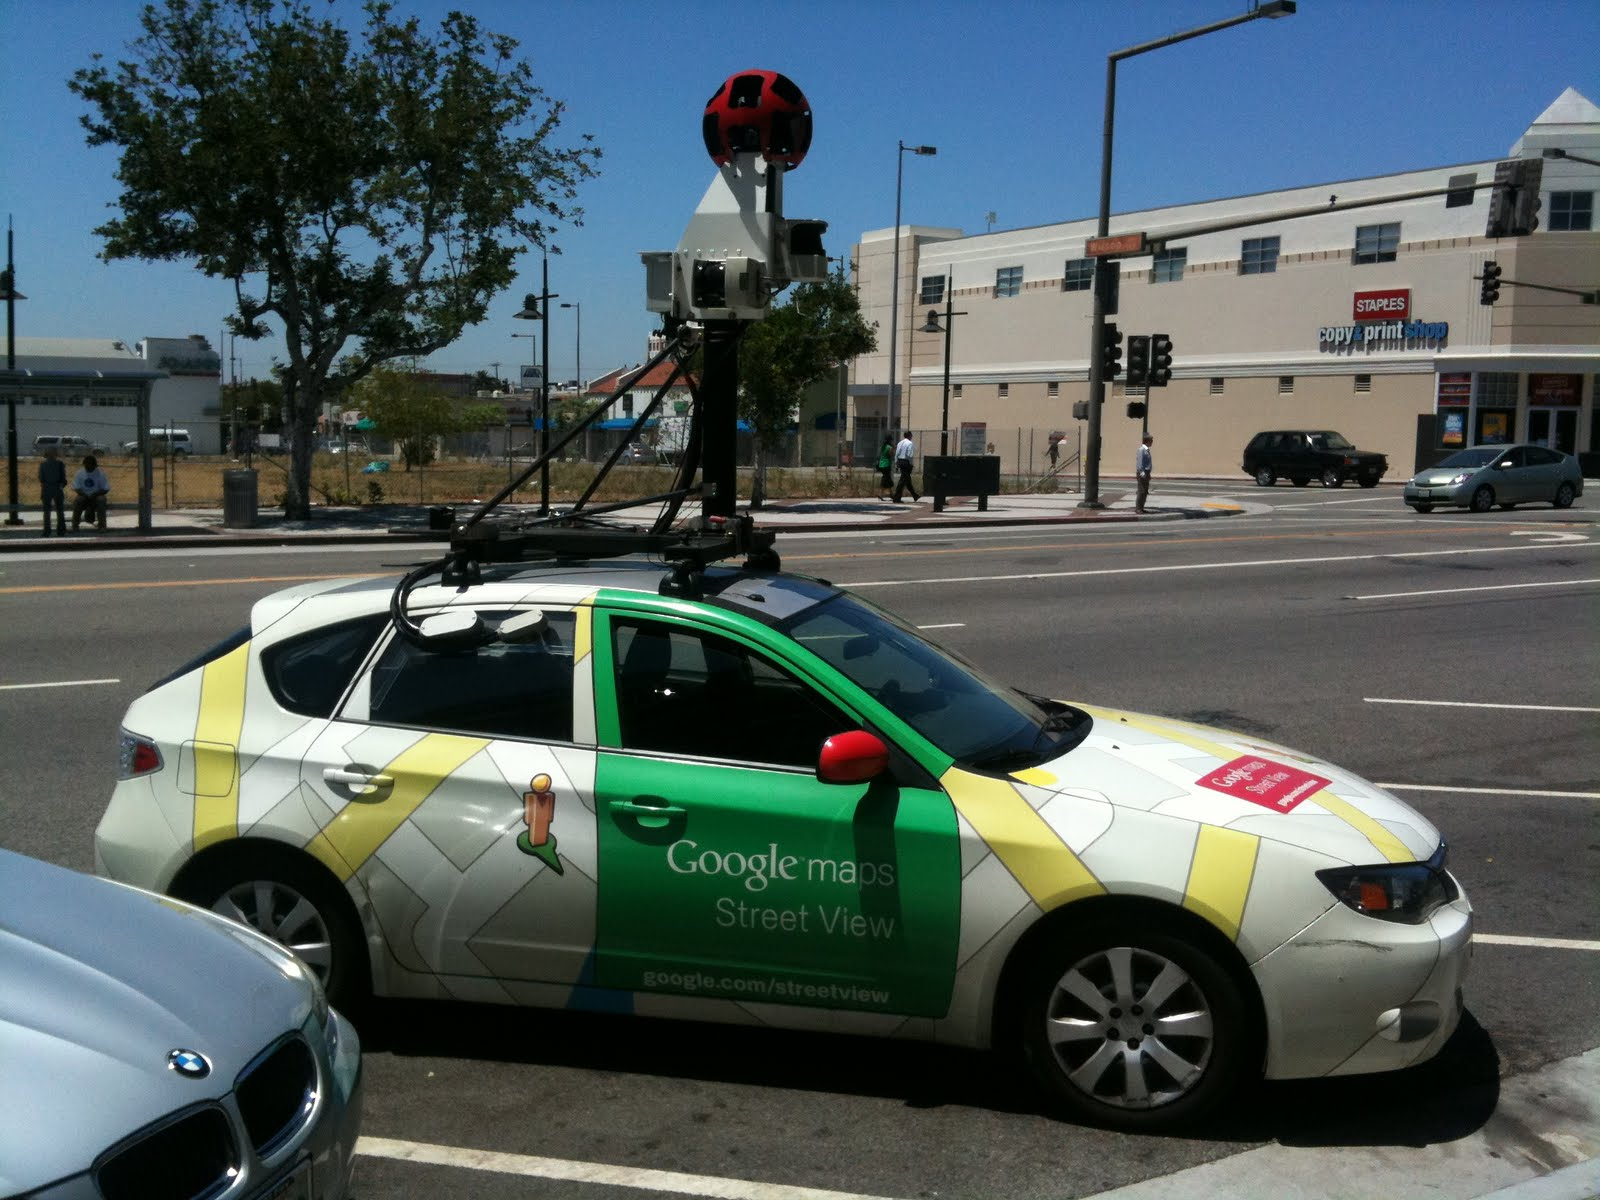 google street view and privacy essay Google recently lost a case that claimed its street view photography feature is an invasion of privacy that gets its images by trespassing.